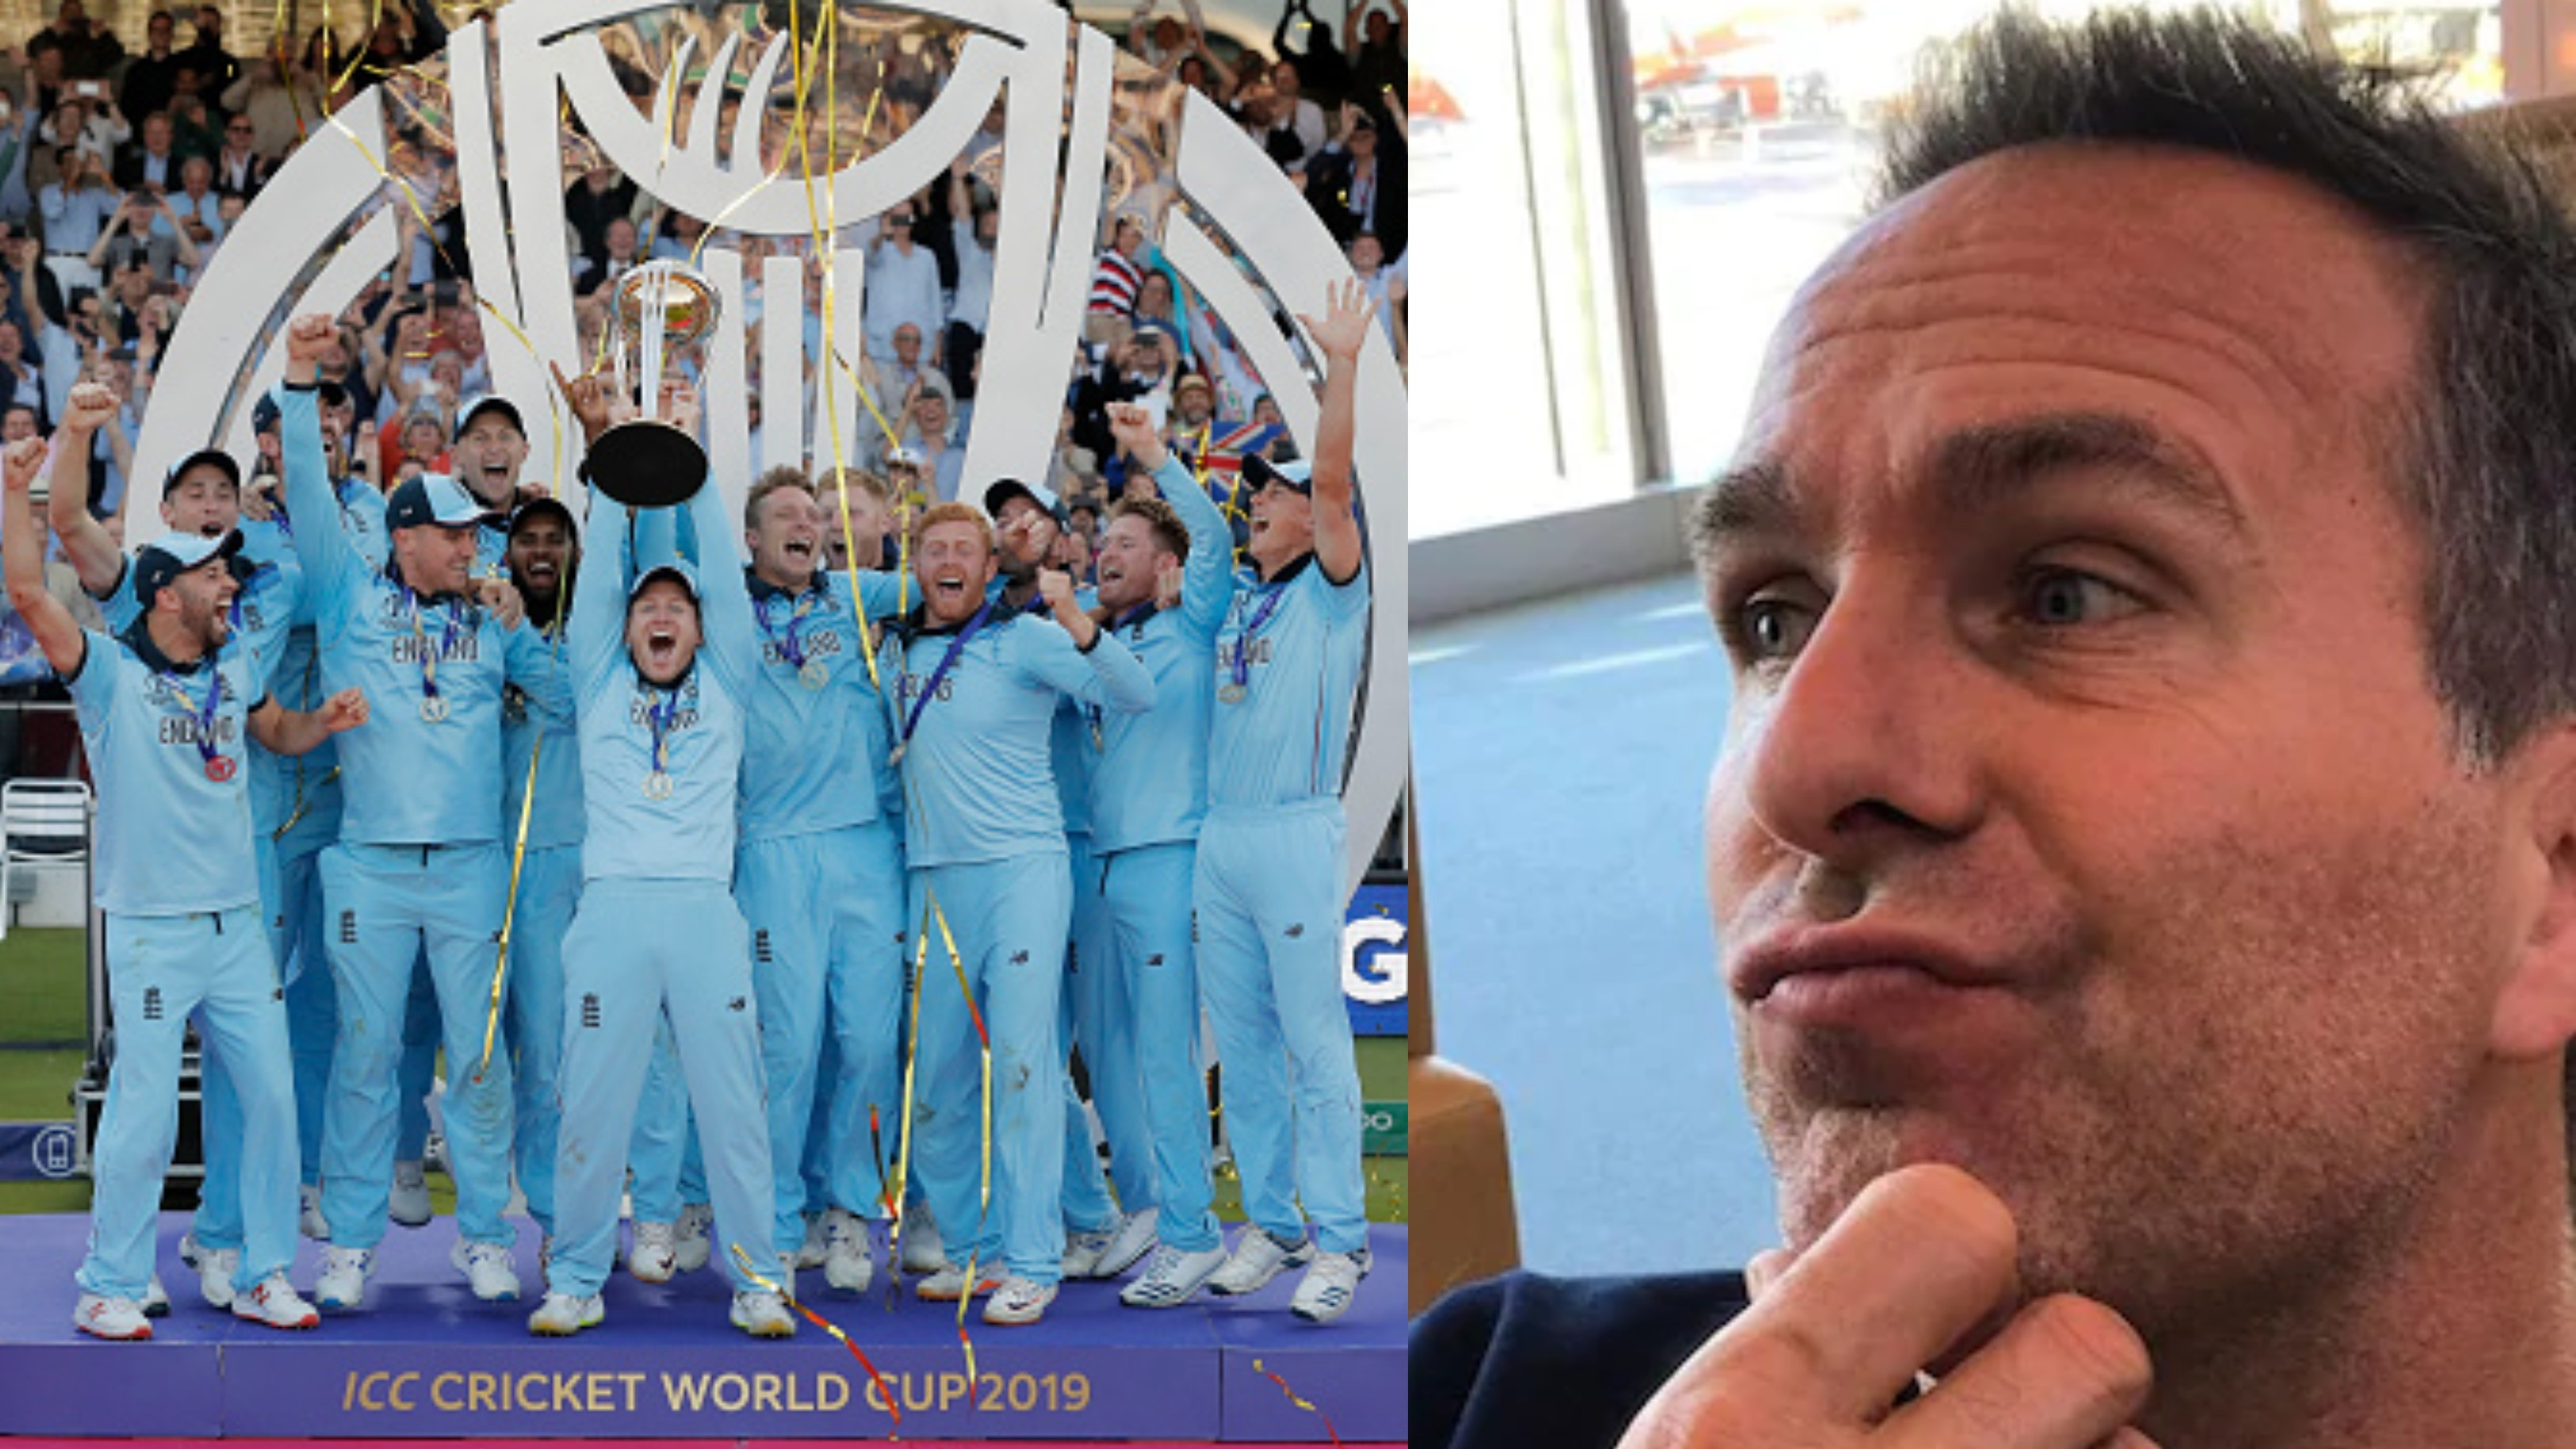 Michael Vaughan's hilarious response to ICC's most iconic photo of all time